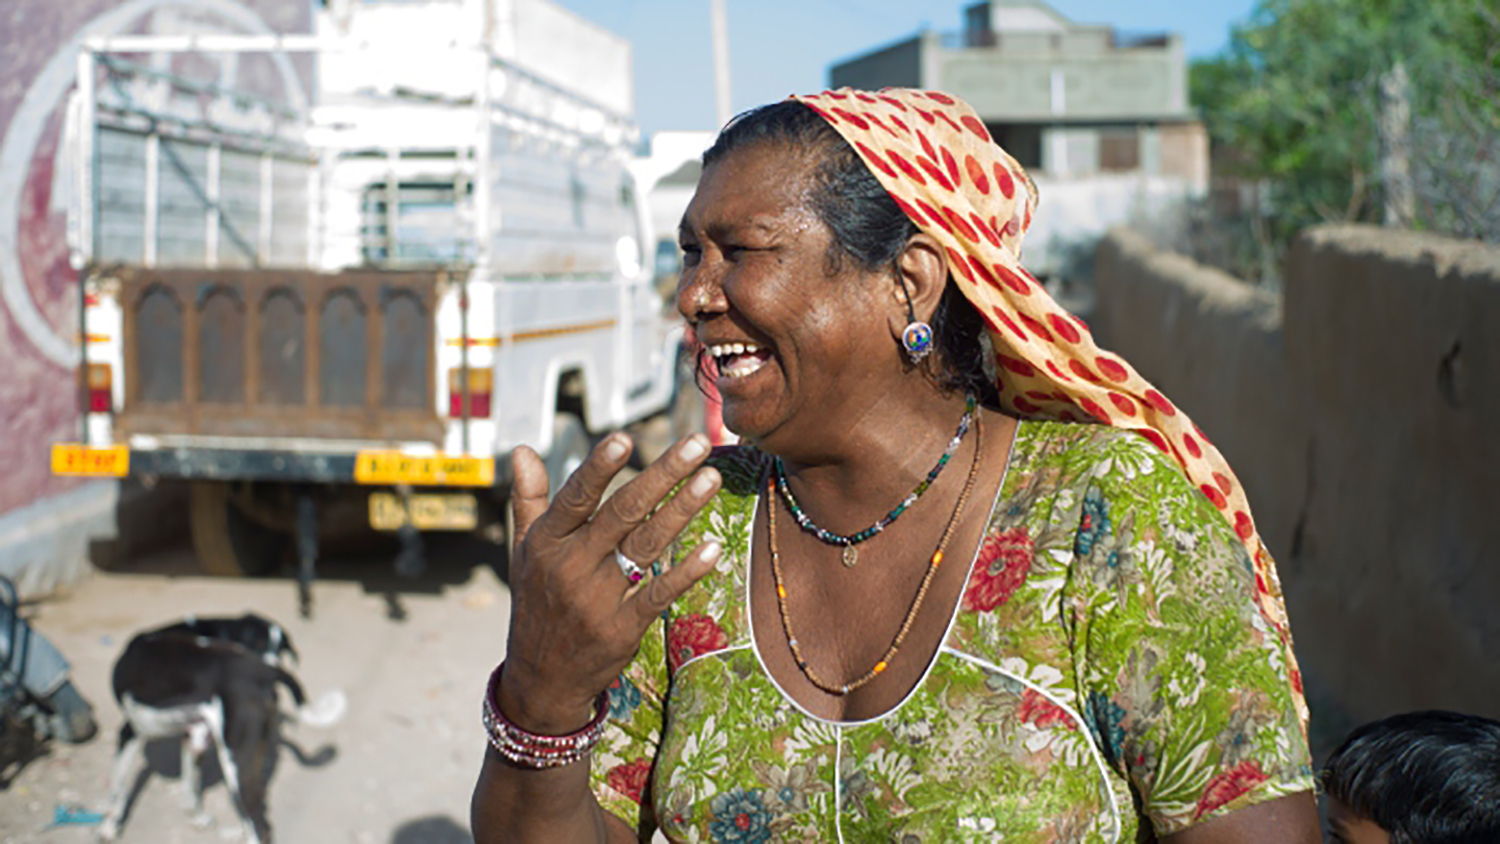 A woman in New Delhi, India, laughs as she stands on the street in front of a truck.